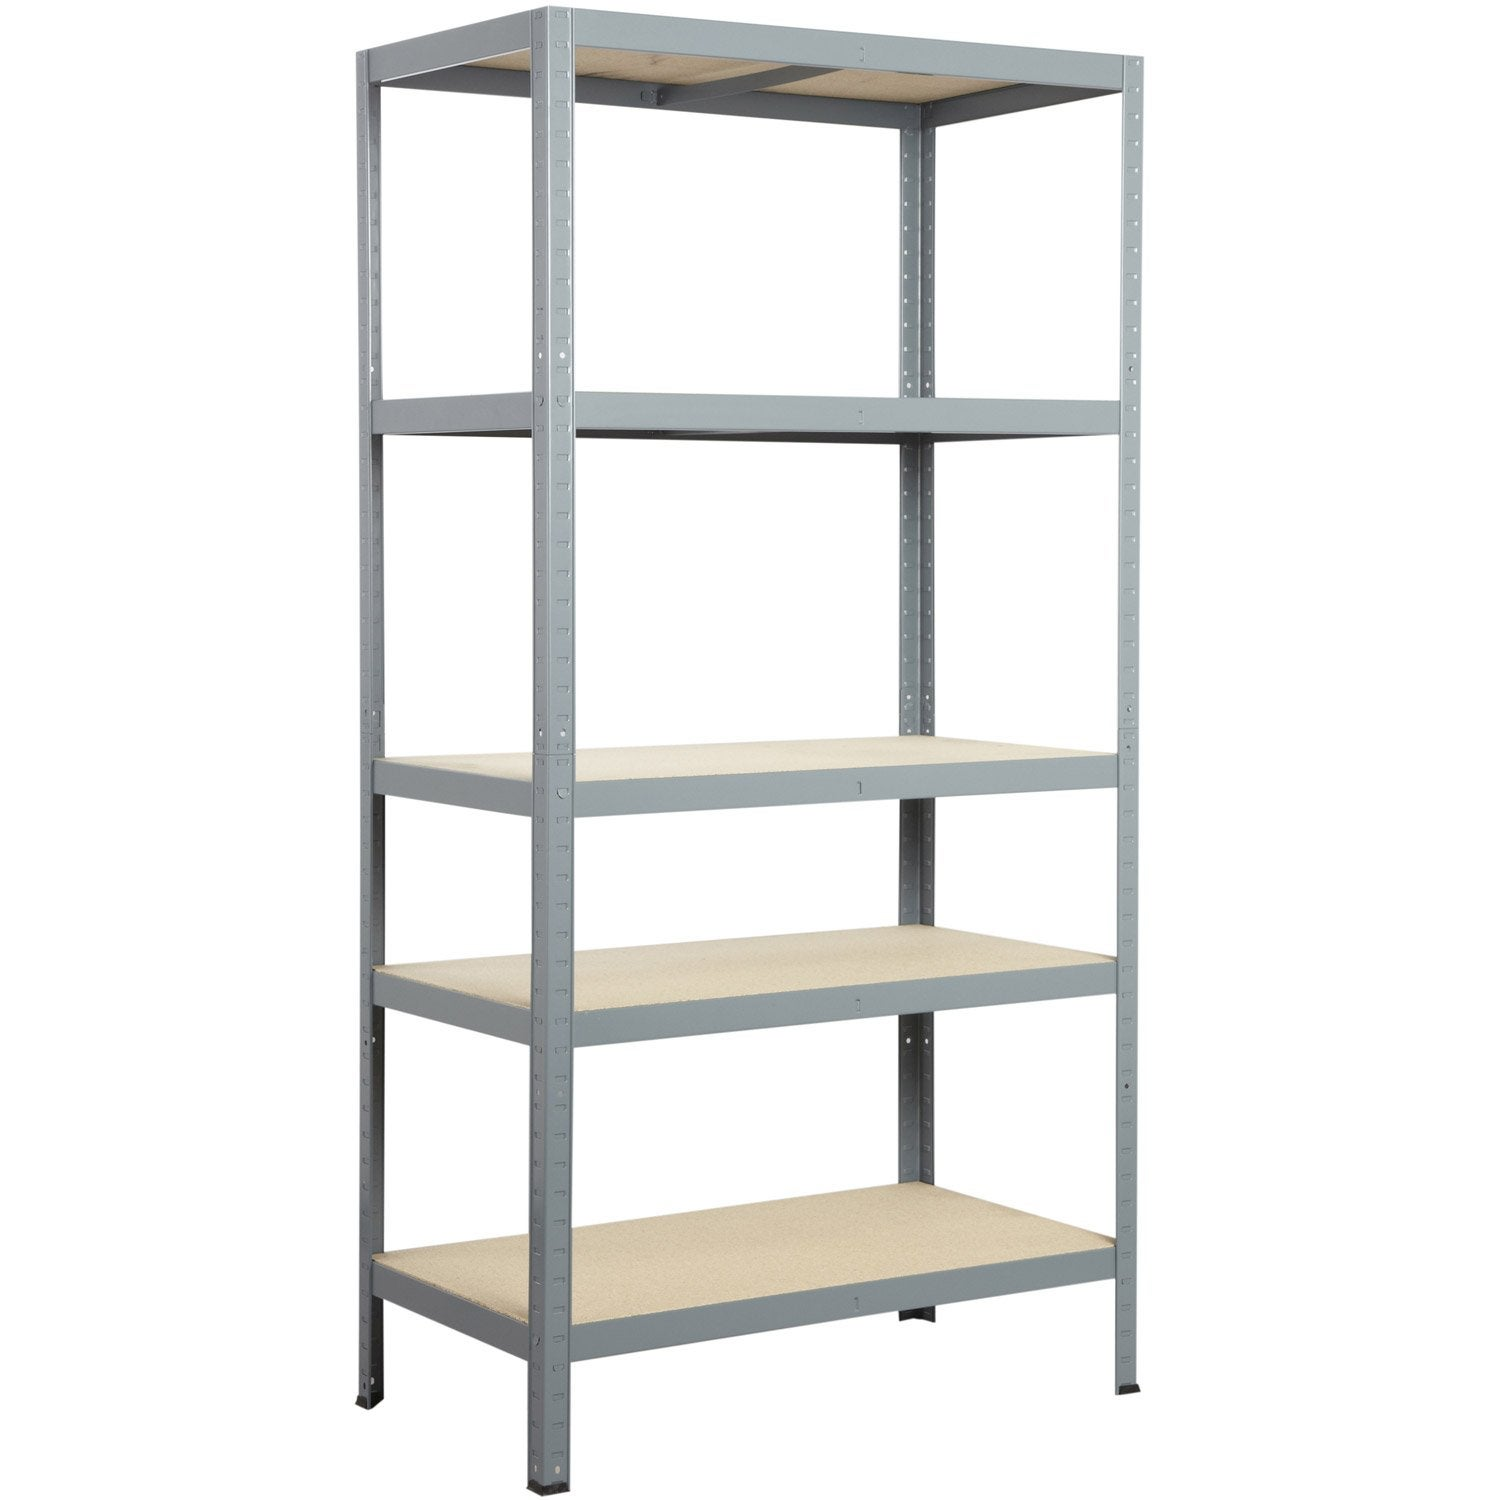 Etag re acier strong 5 tablettes gris x x p for Etagere 50 cm de large